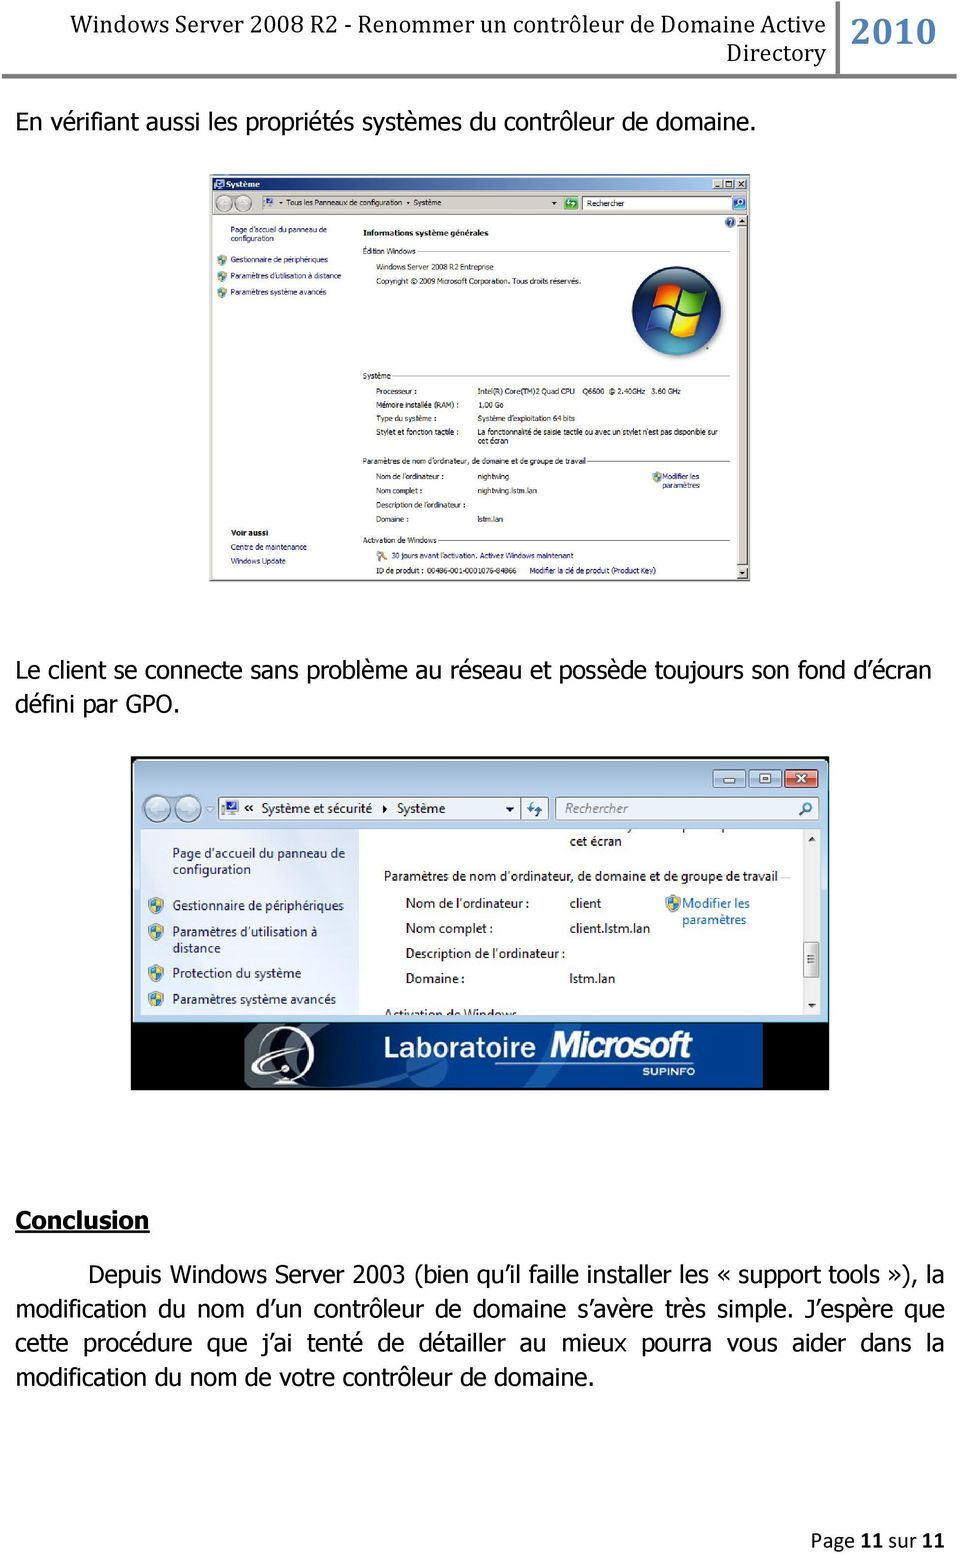 Conclusion Depuis Windows Server 2003 (bien qu il faille installer les «support tools»), la modification du nom d un